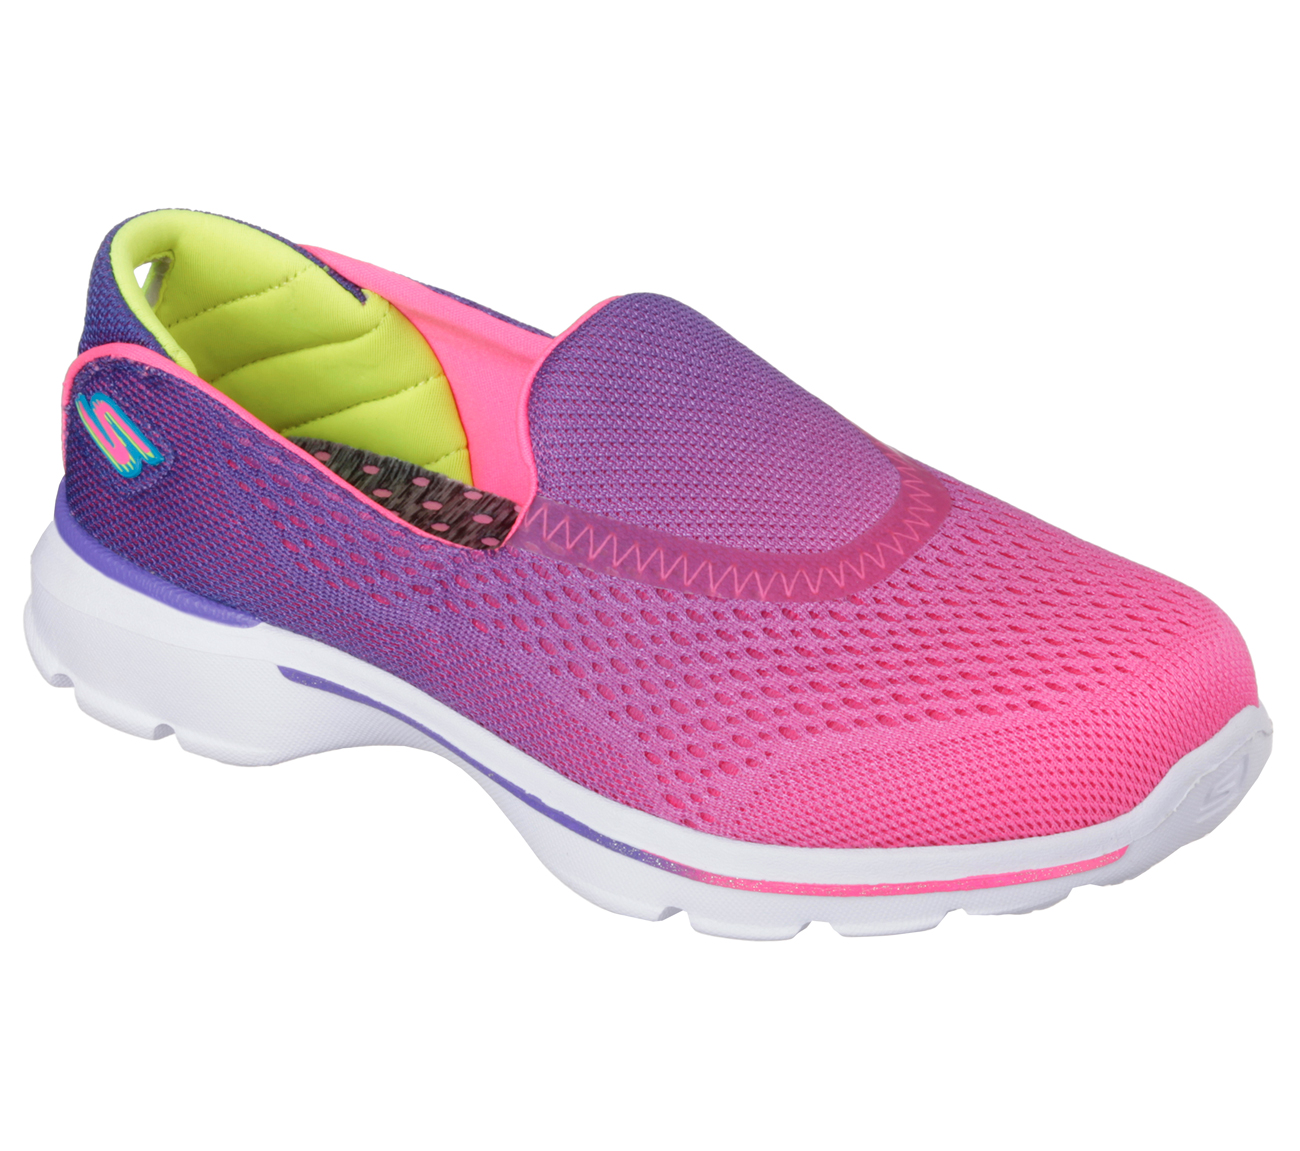 Skechers Shoes Girls Canada